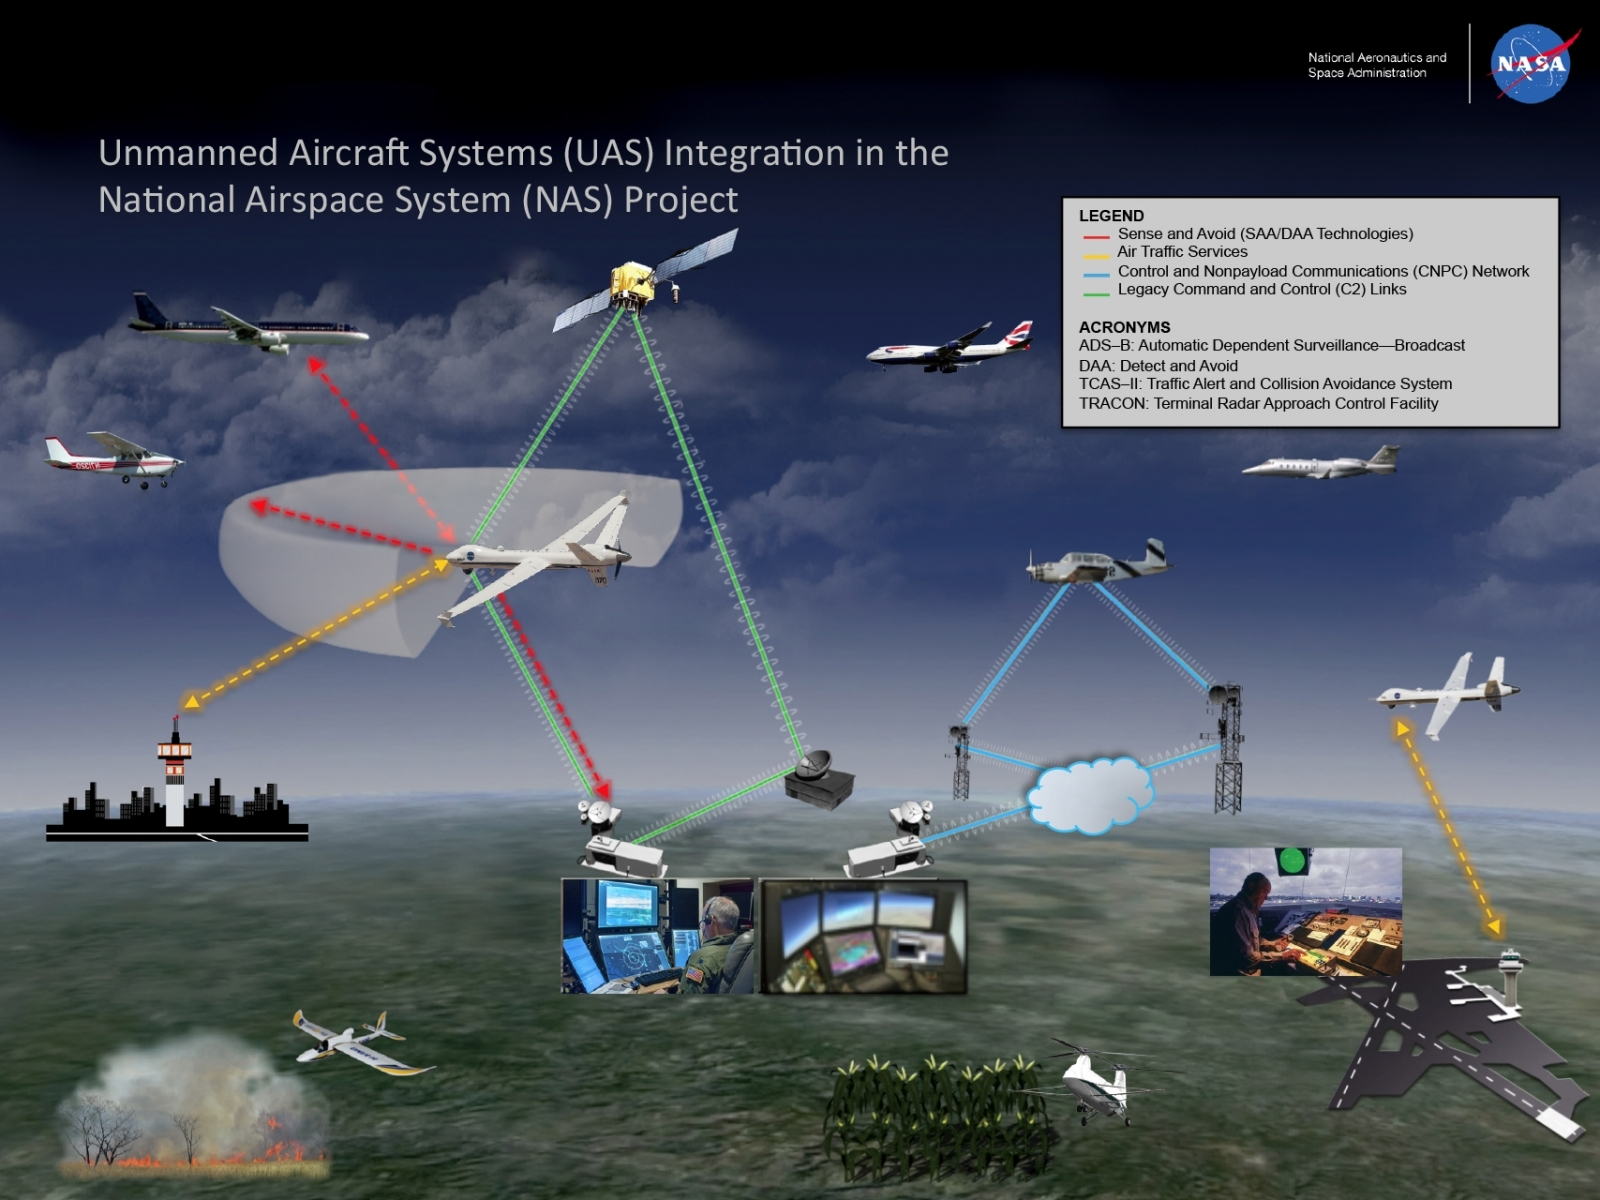 Nasa to demonstrate flying drones in controlled airspace alongside commercial aircraft